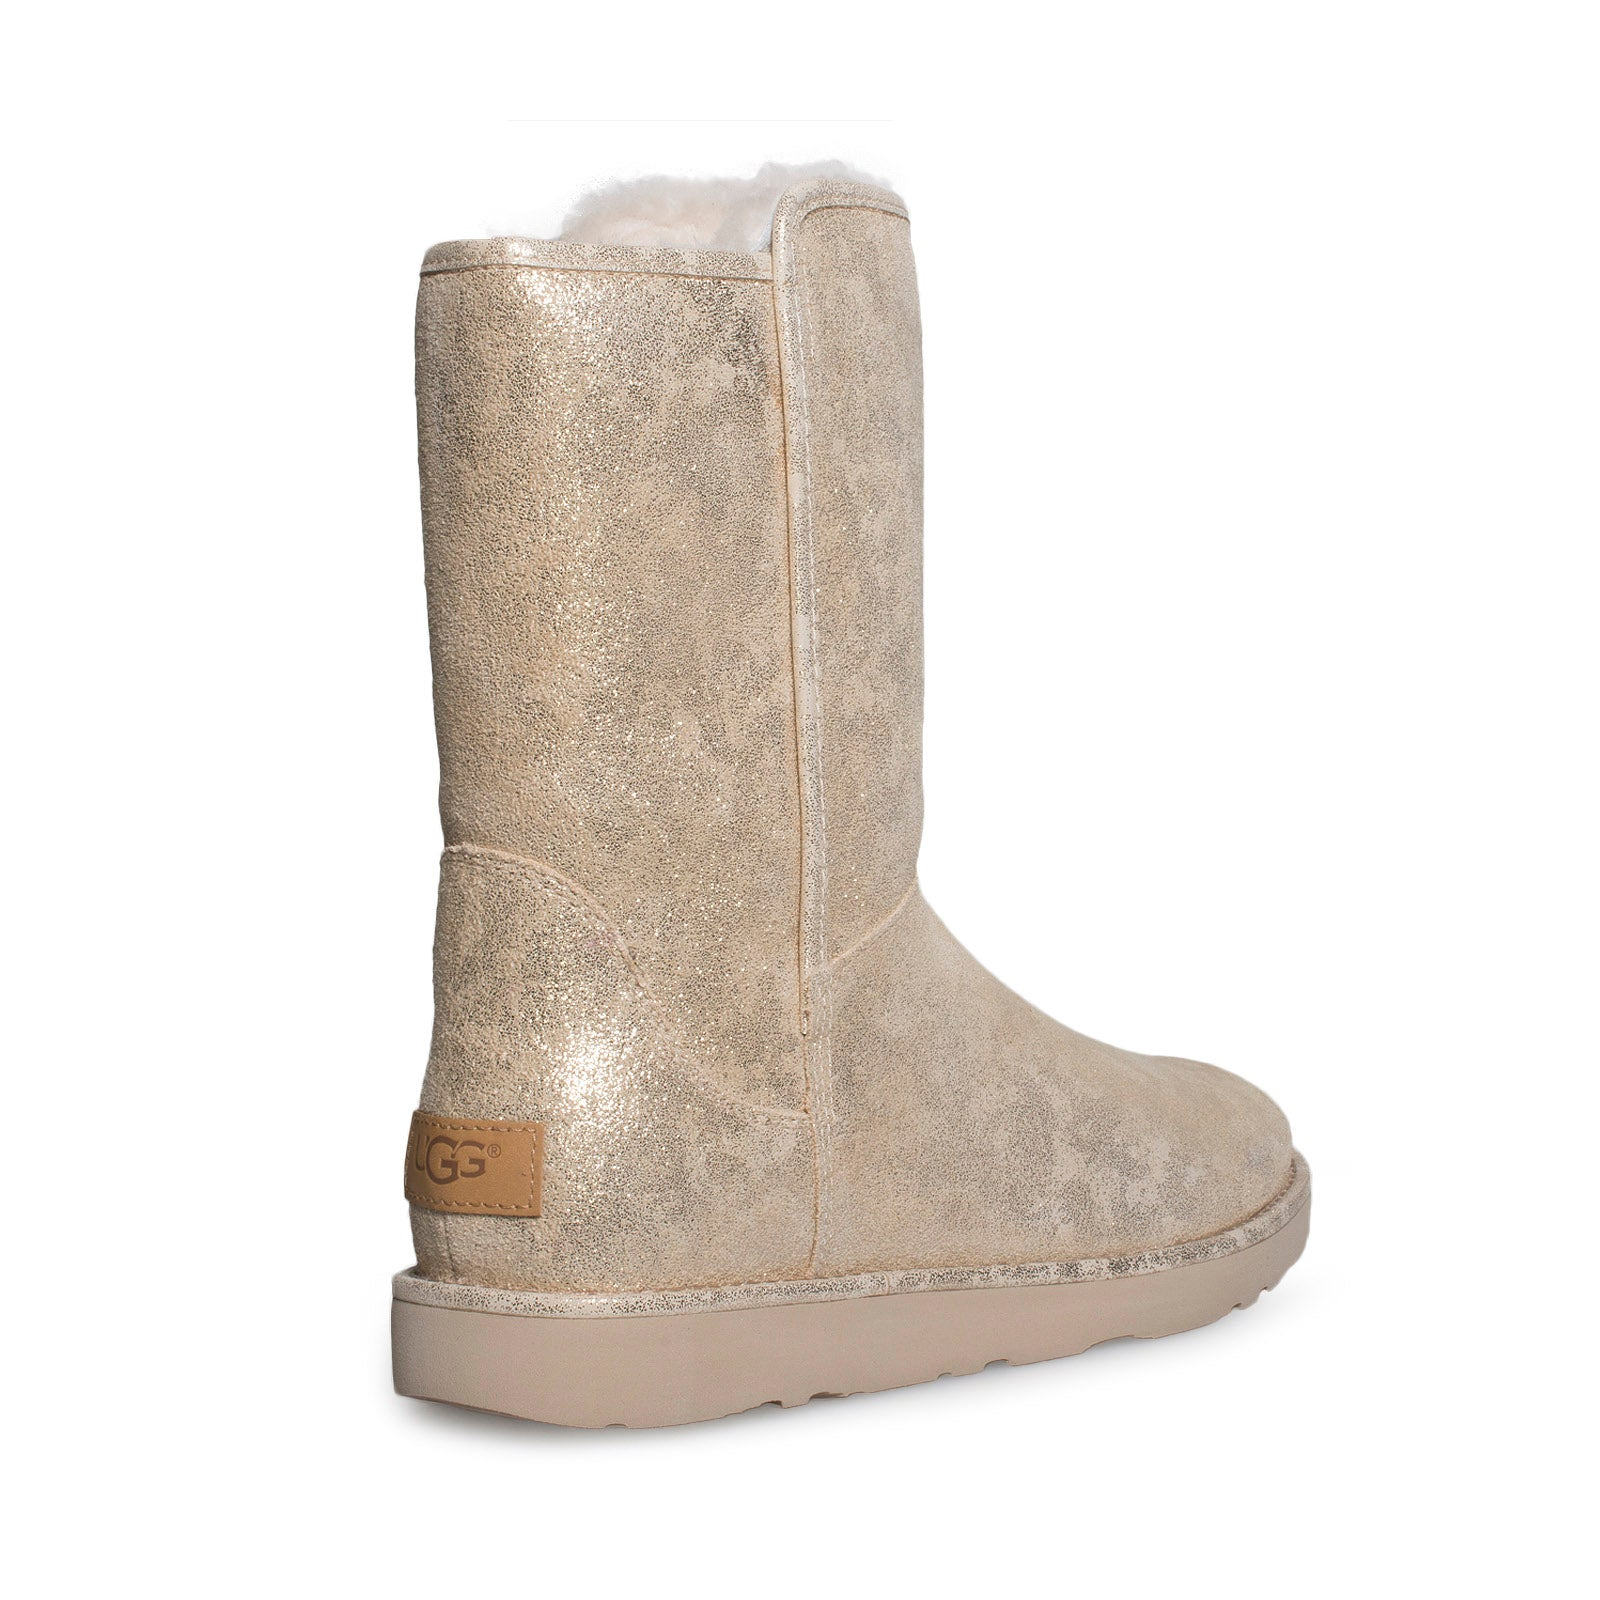 a9b4f83c7f4 UGG Abree Short II Stardust Metallic Gold Boots - Women's